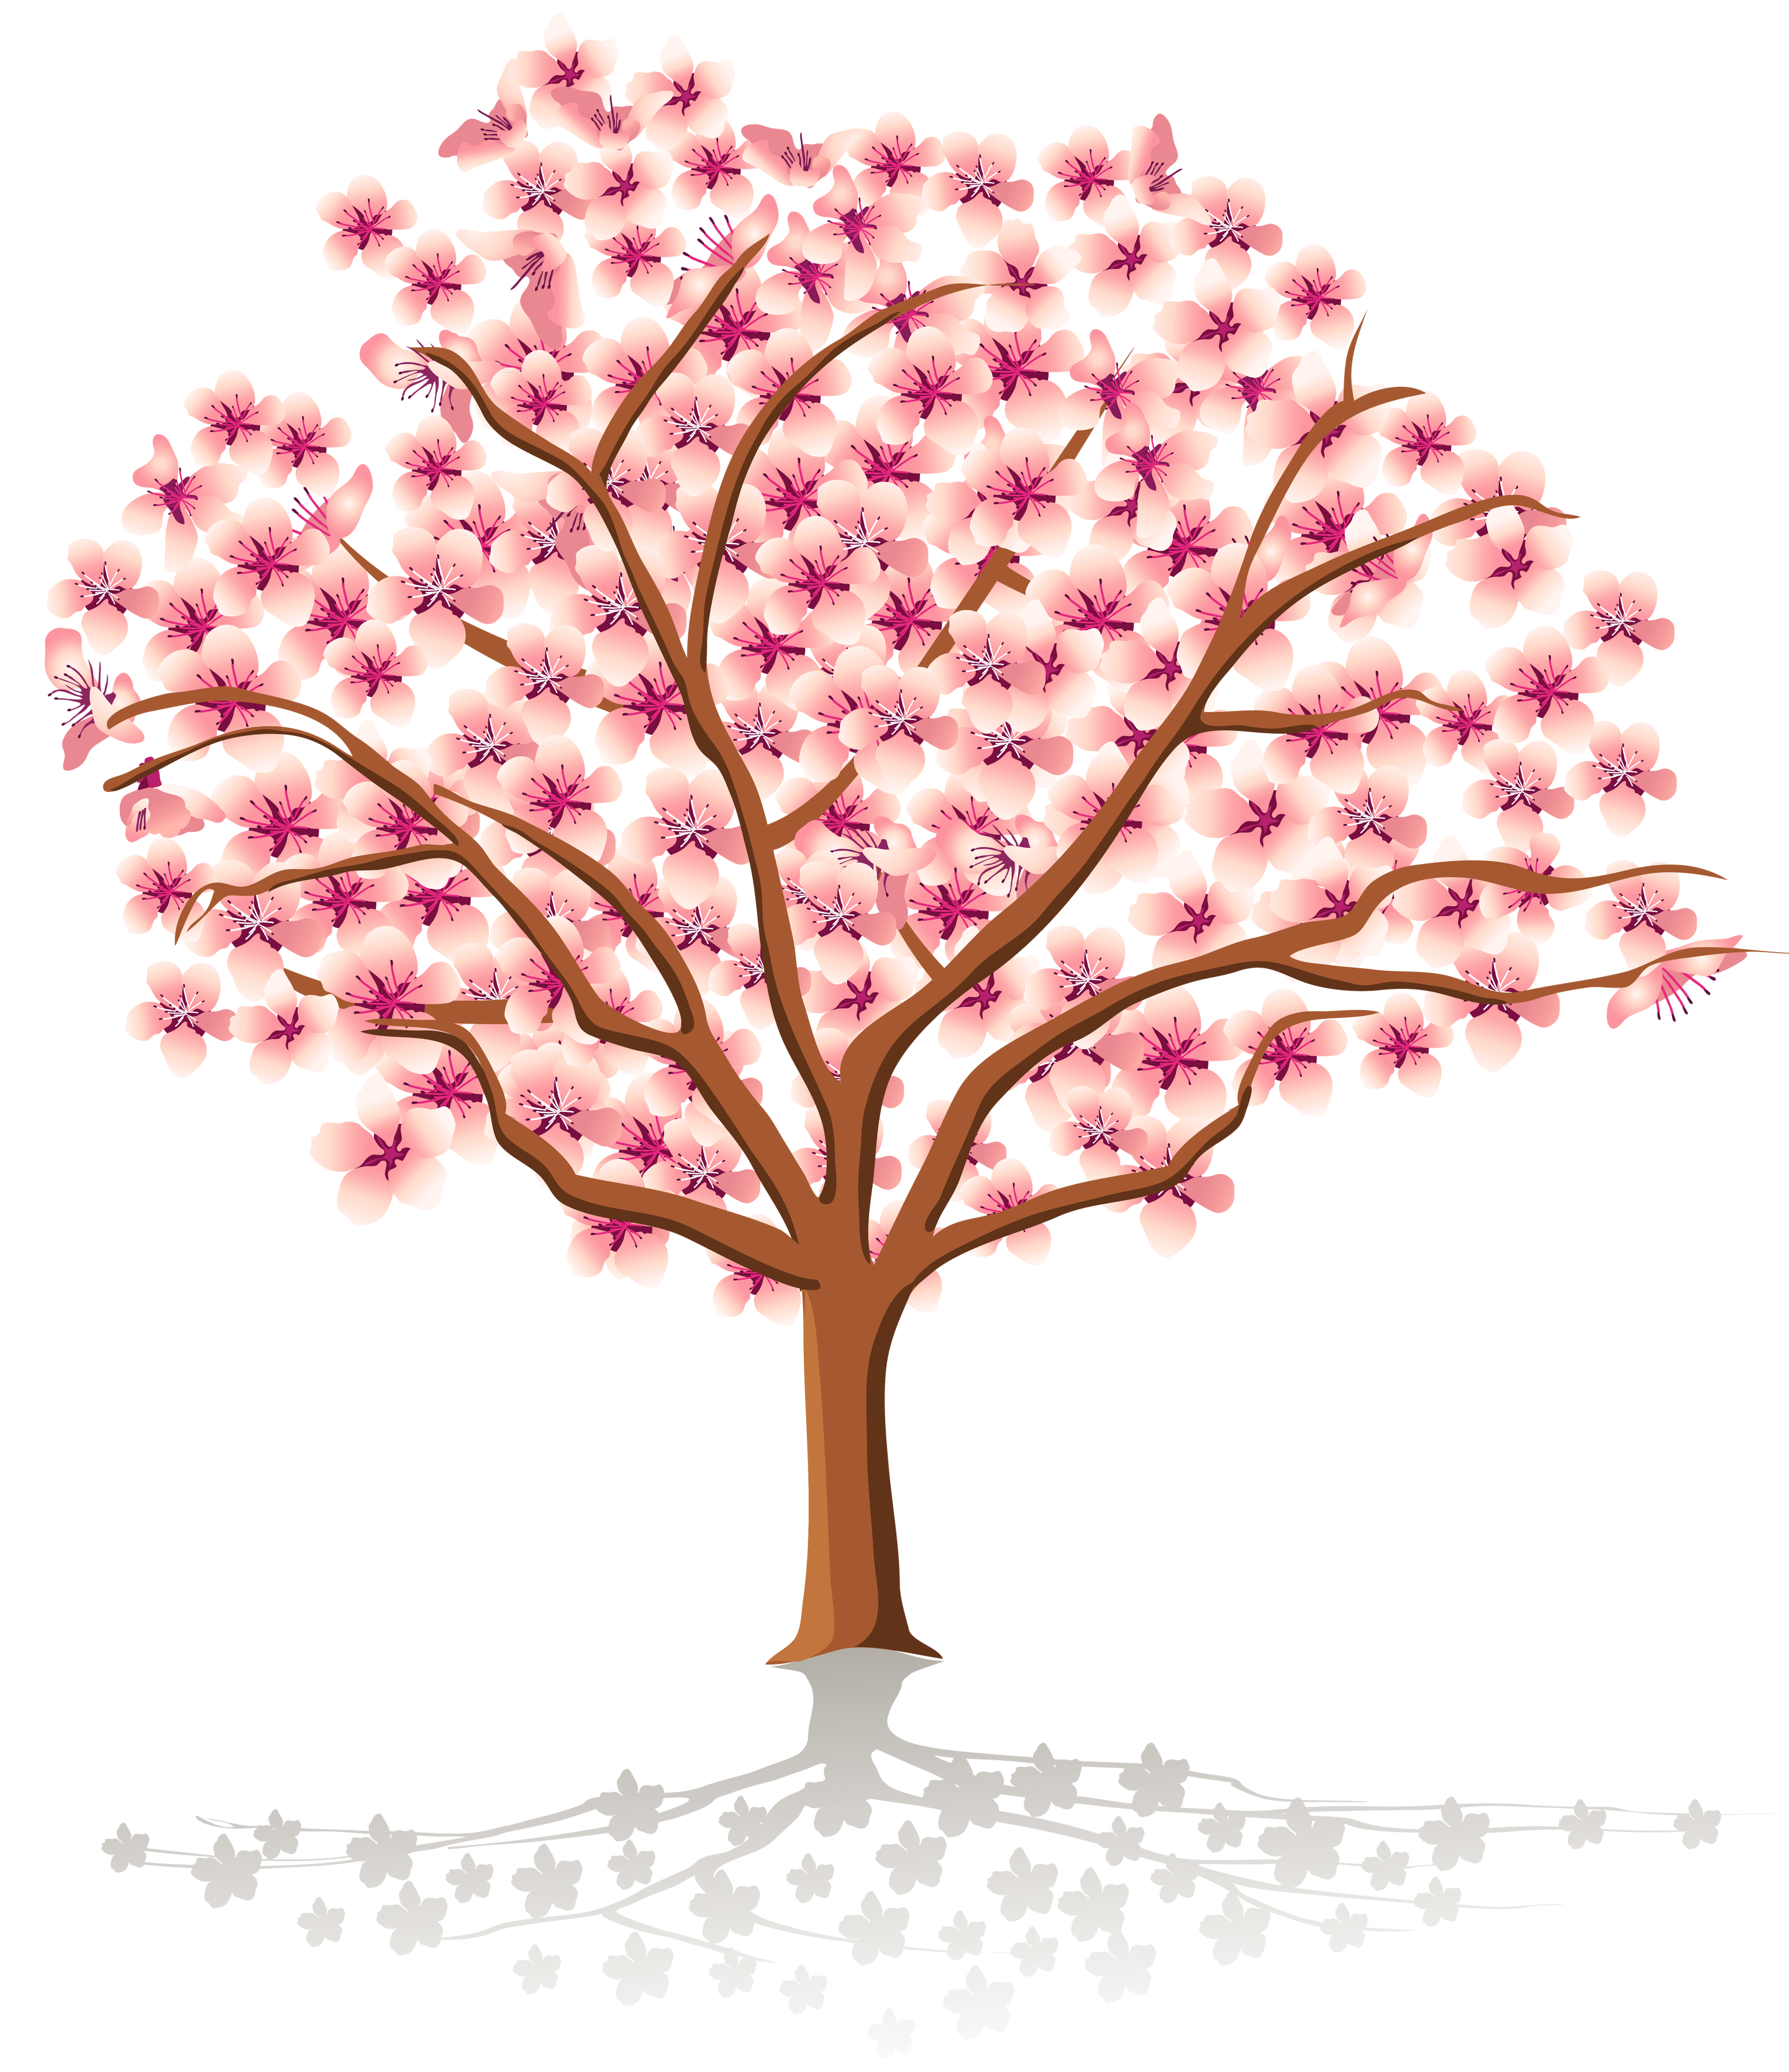 Apple tree flowers clipart svg transparent library January 2018 by TheLaneSpa - Flipsnack svg transparent library